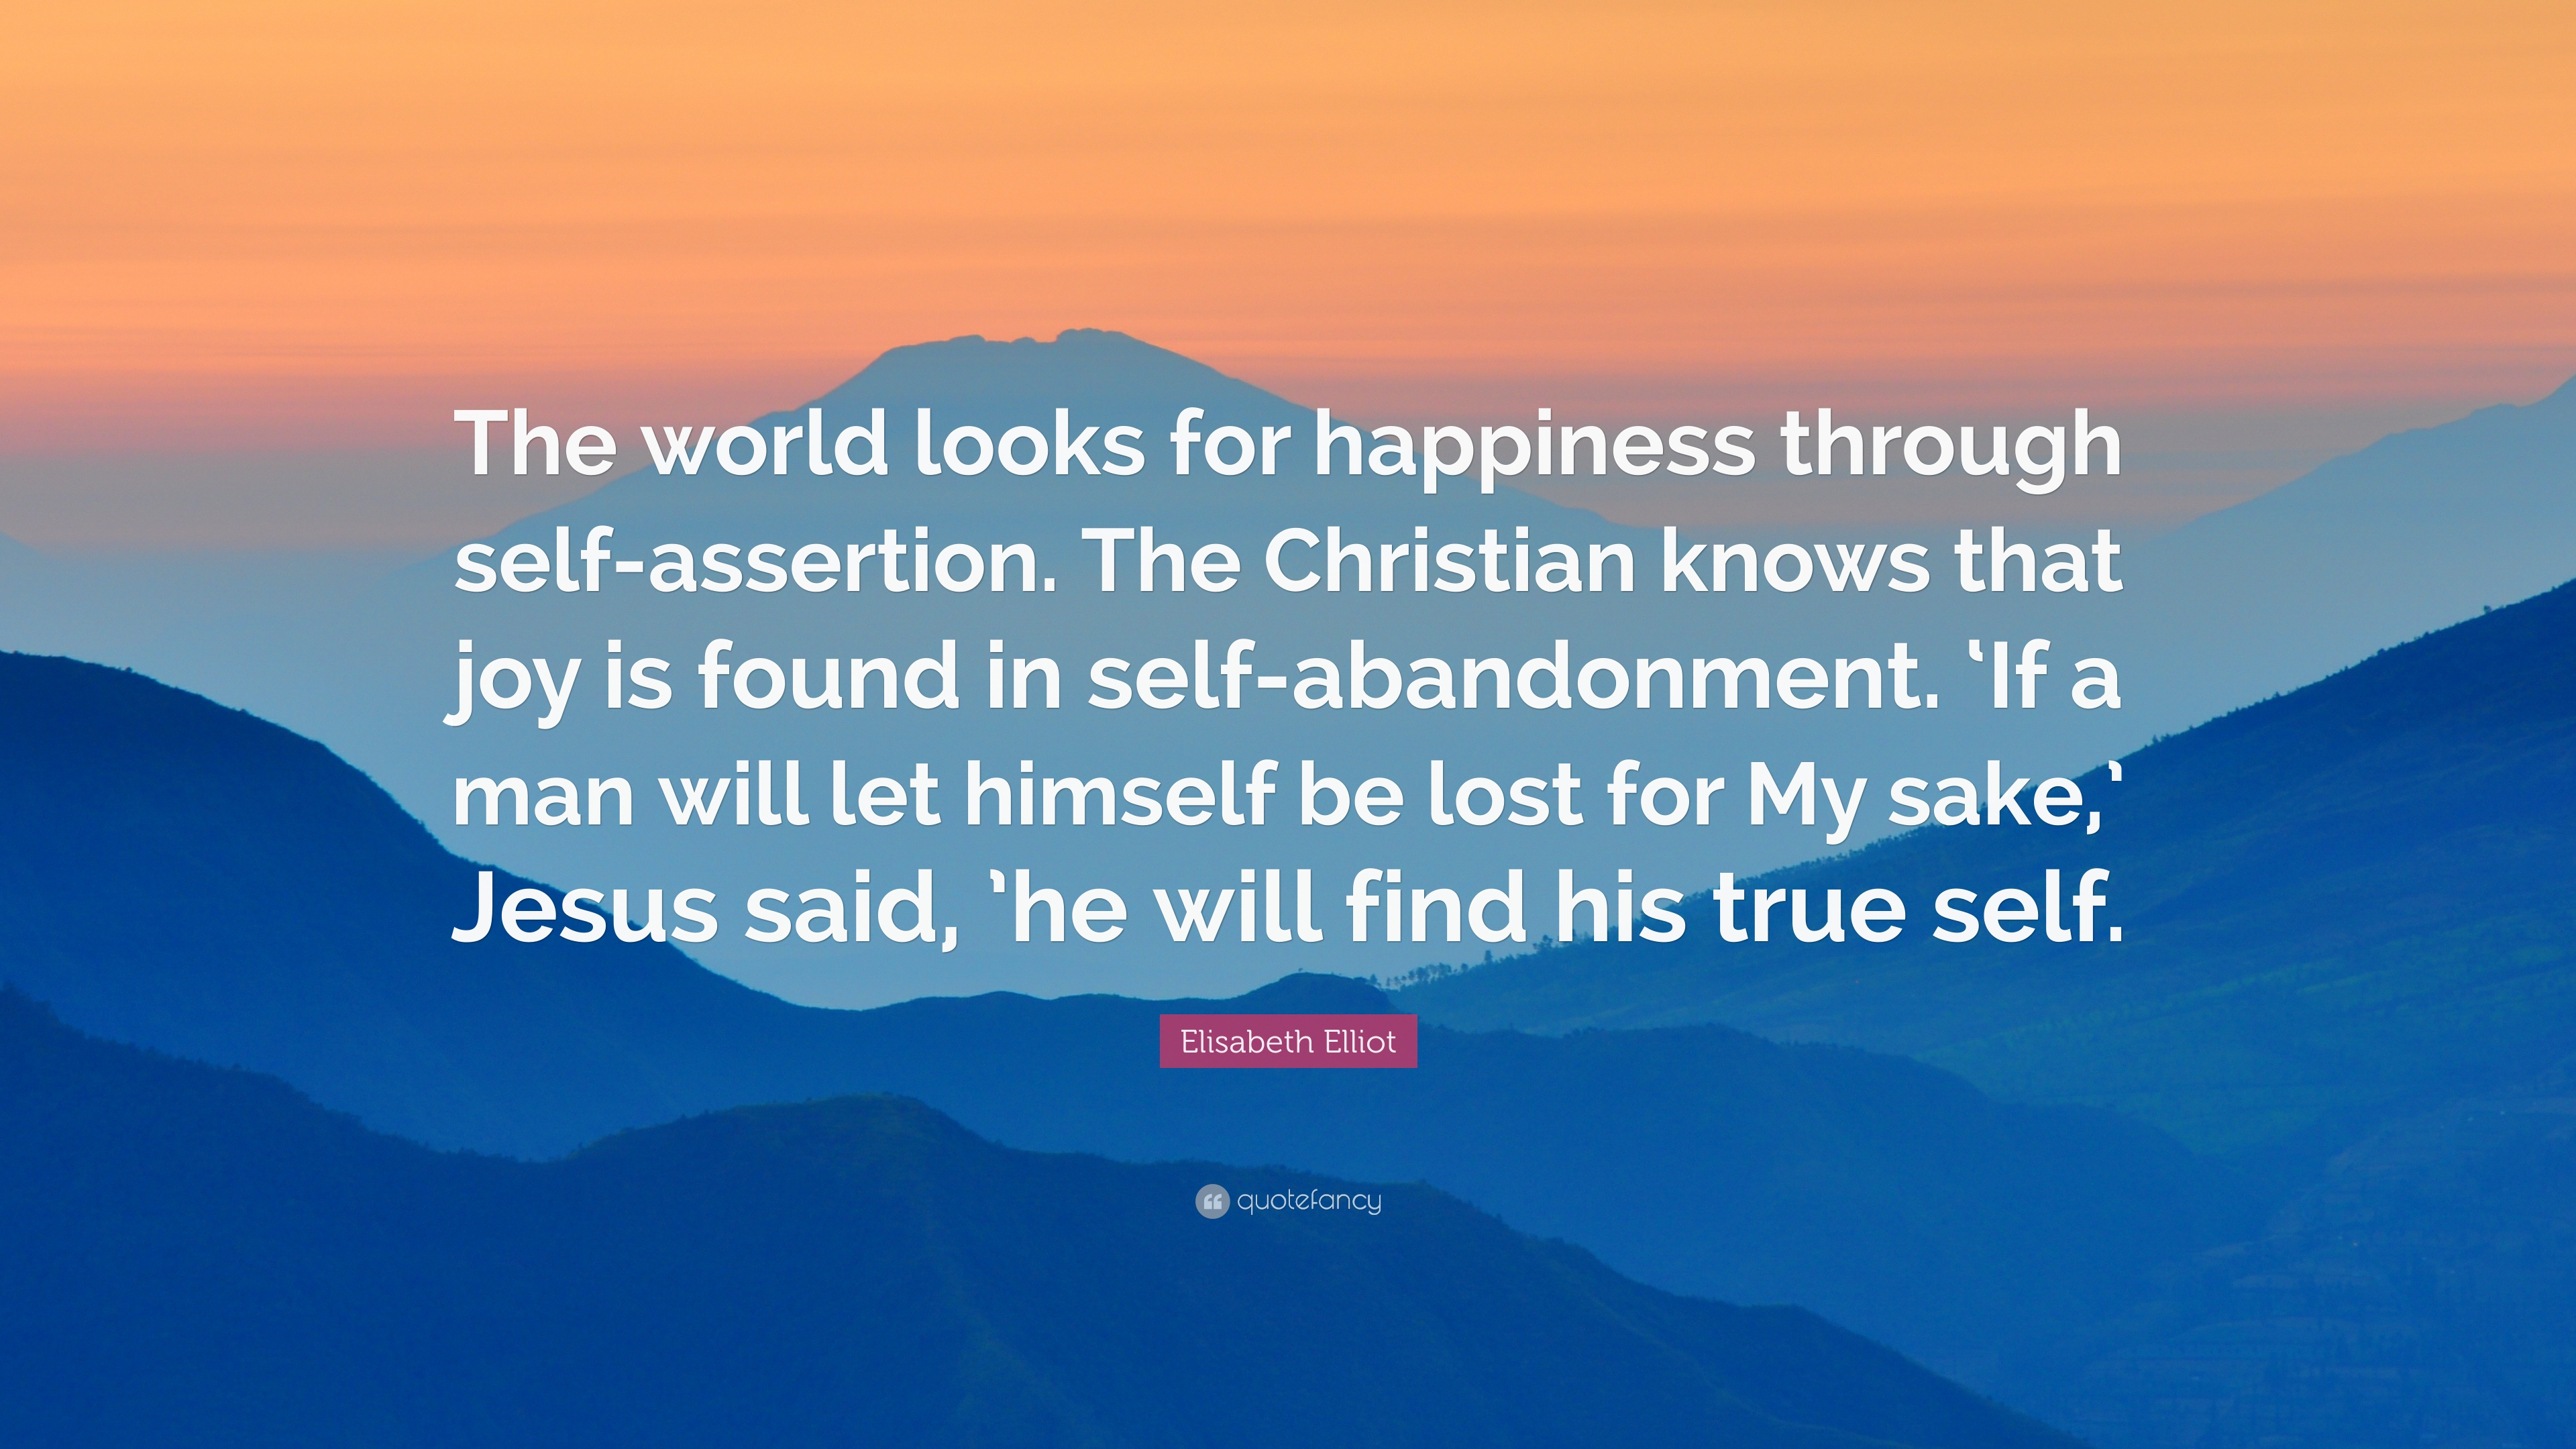 Elisabeth Elliot Quote The World Looks For Happiness Through Self Assertion The Christian Knows That Joy Is Found In Self Abandonment If A M 6 Wallpapers Quotefancy